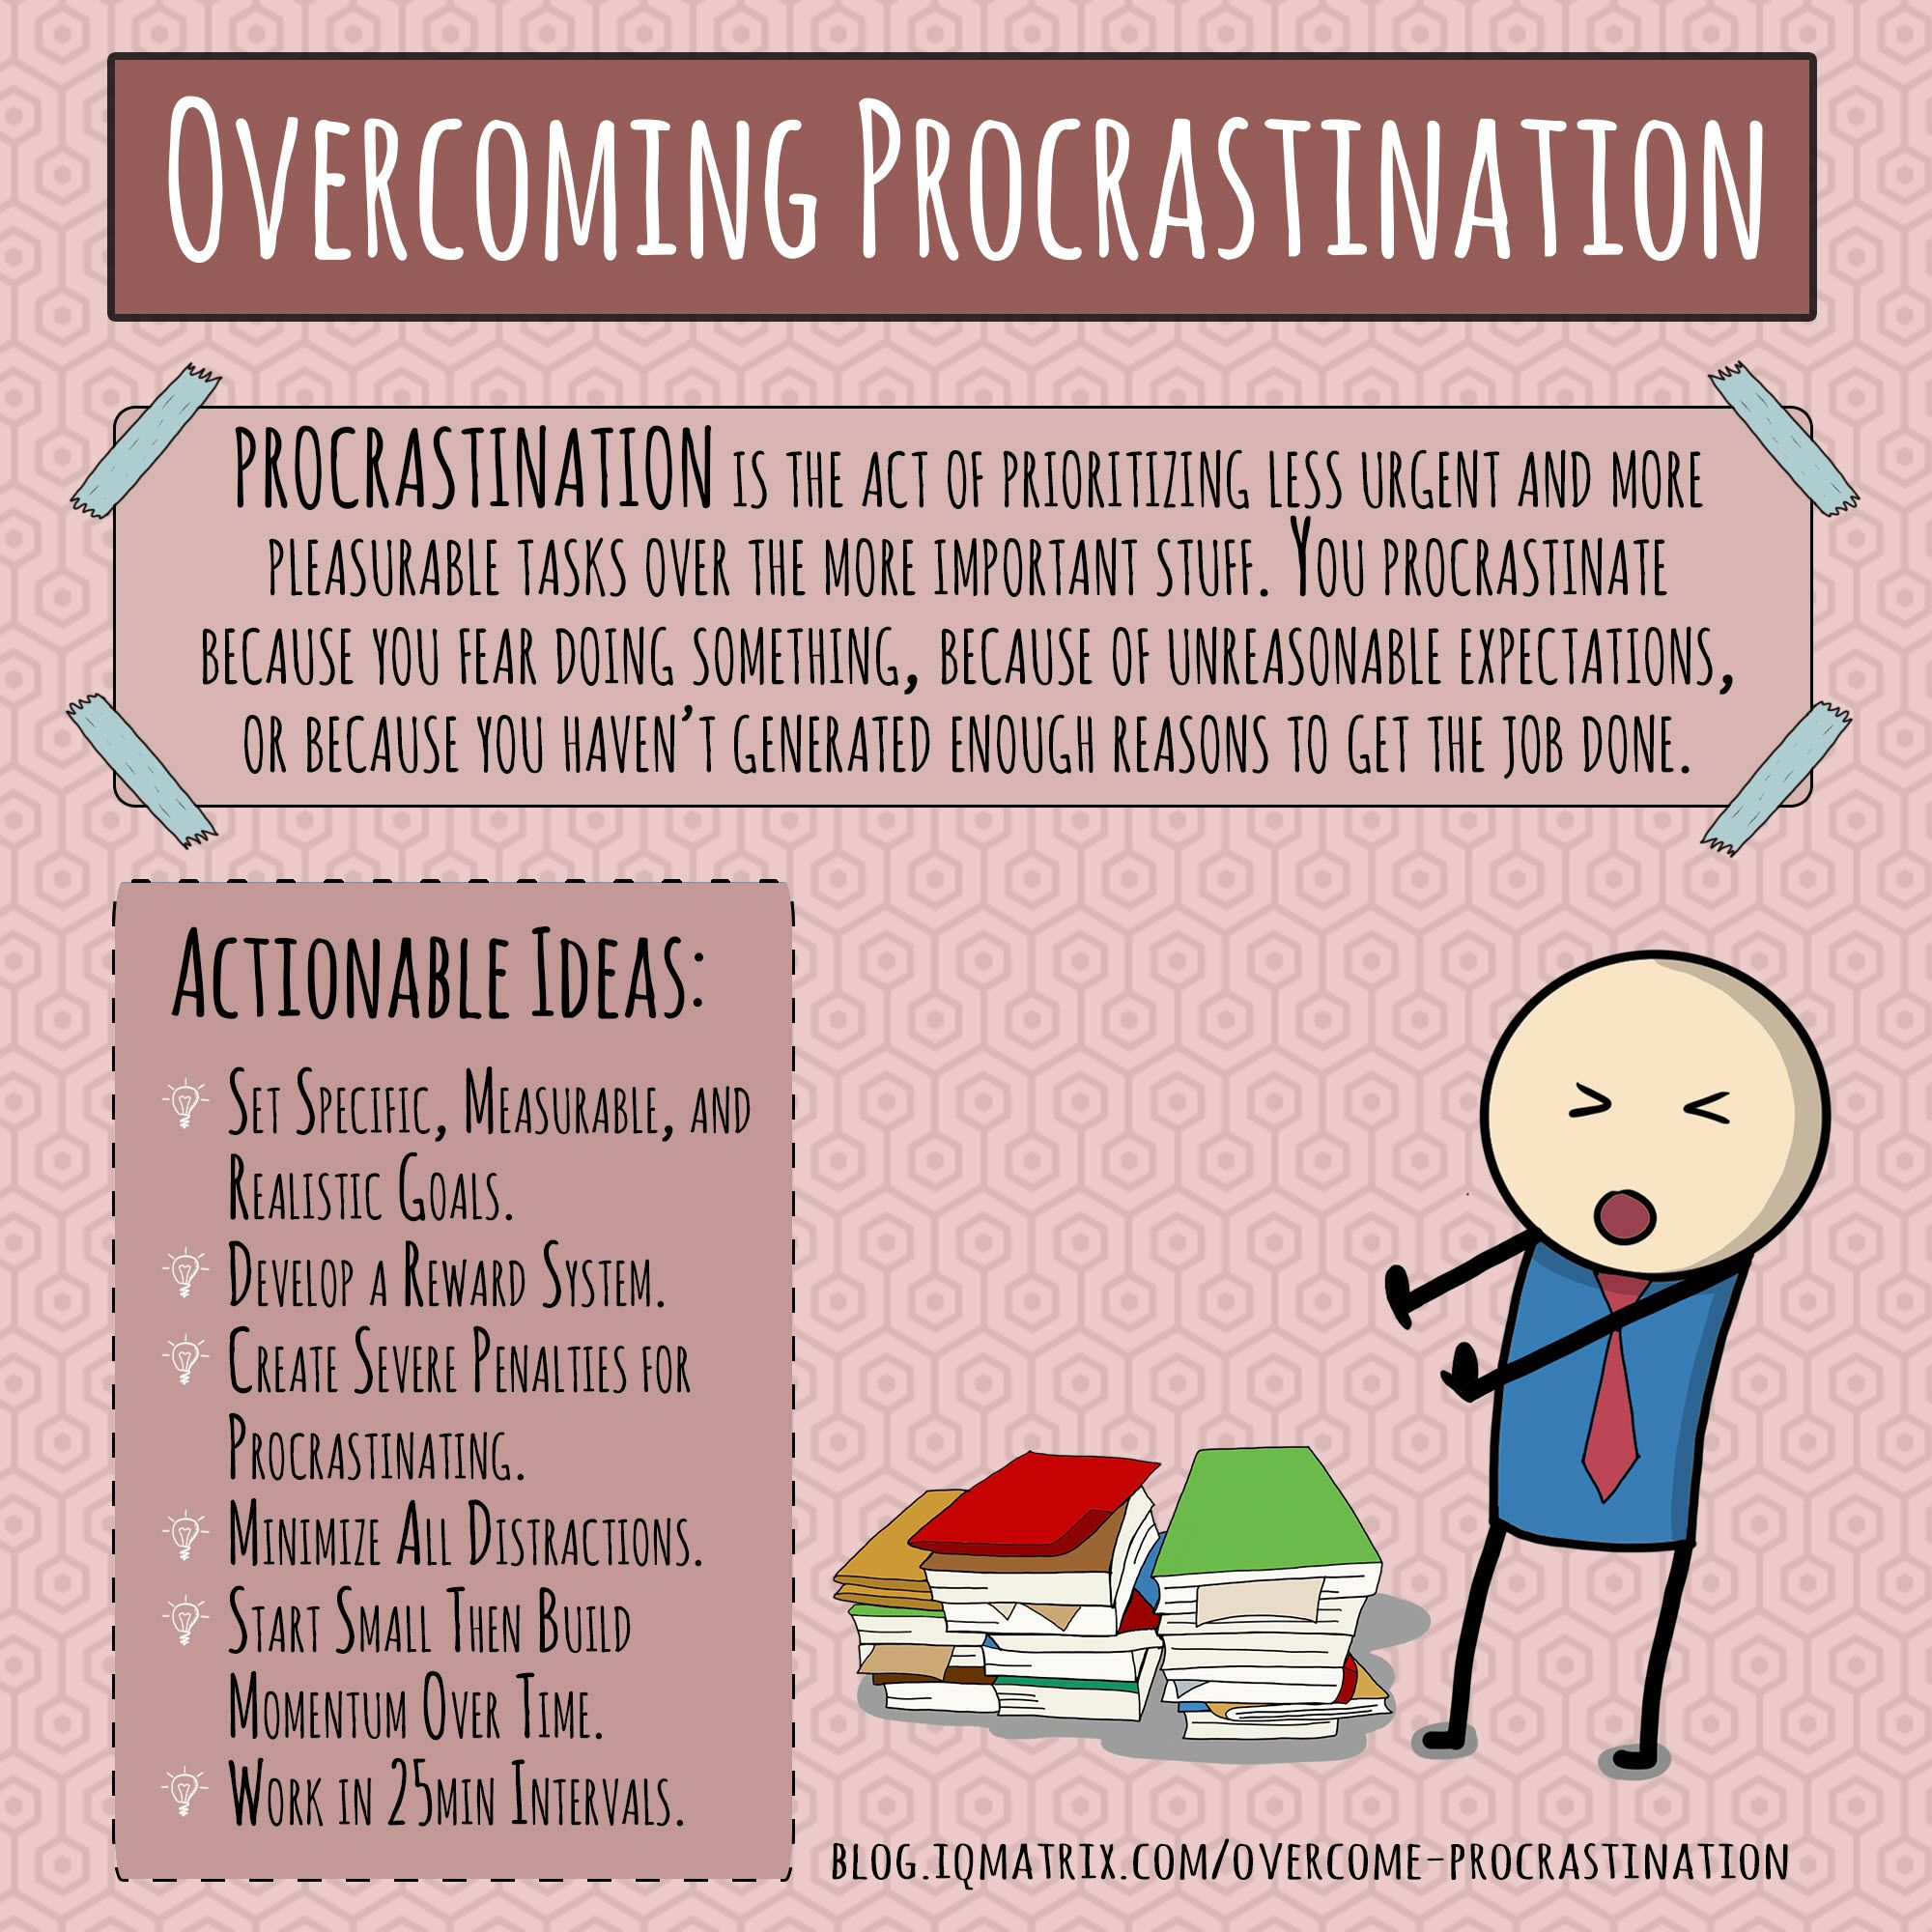 A Foolproof Method To Overcome Procrastination And Achieve